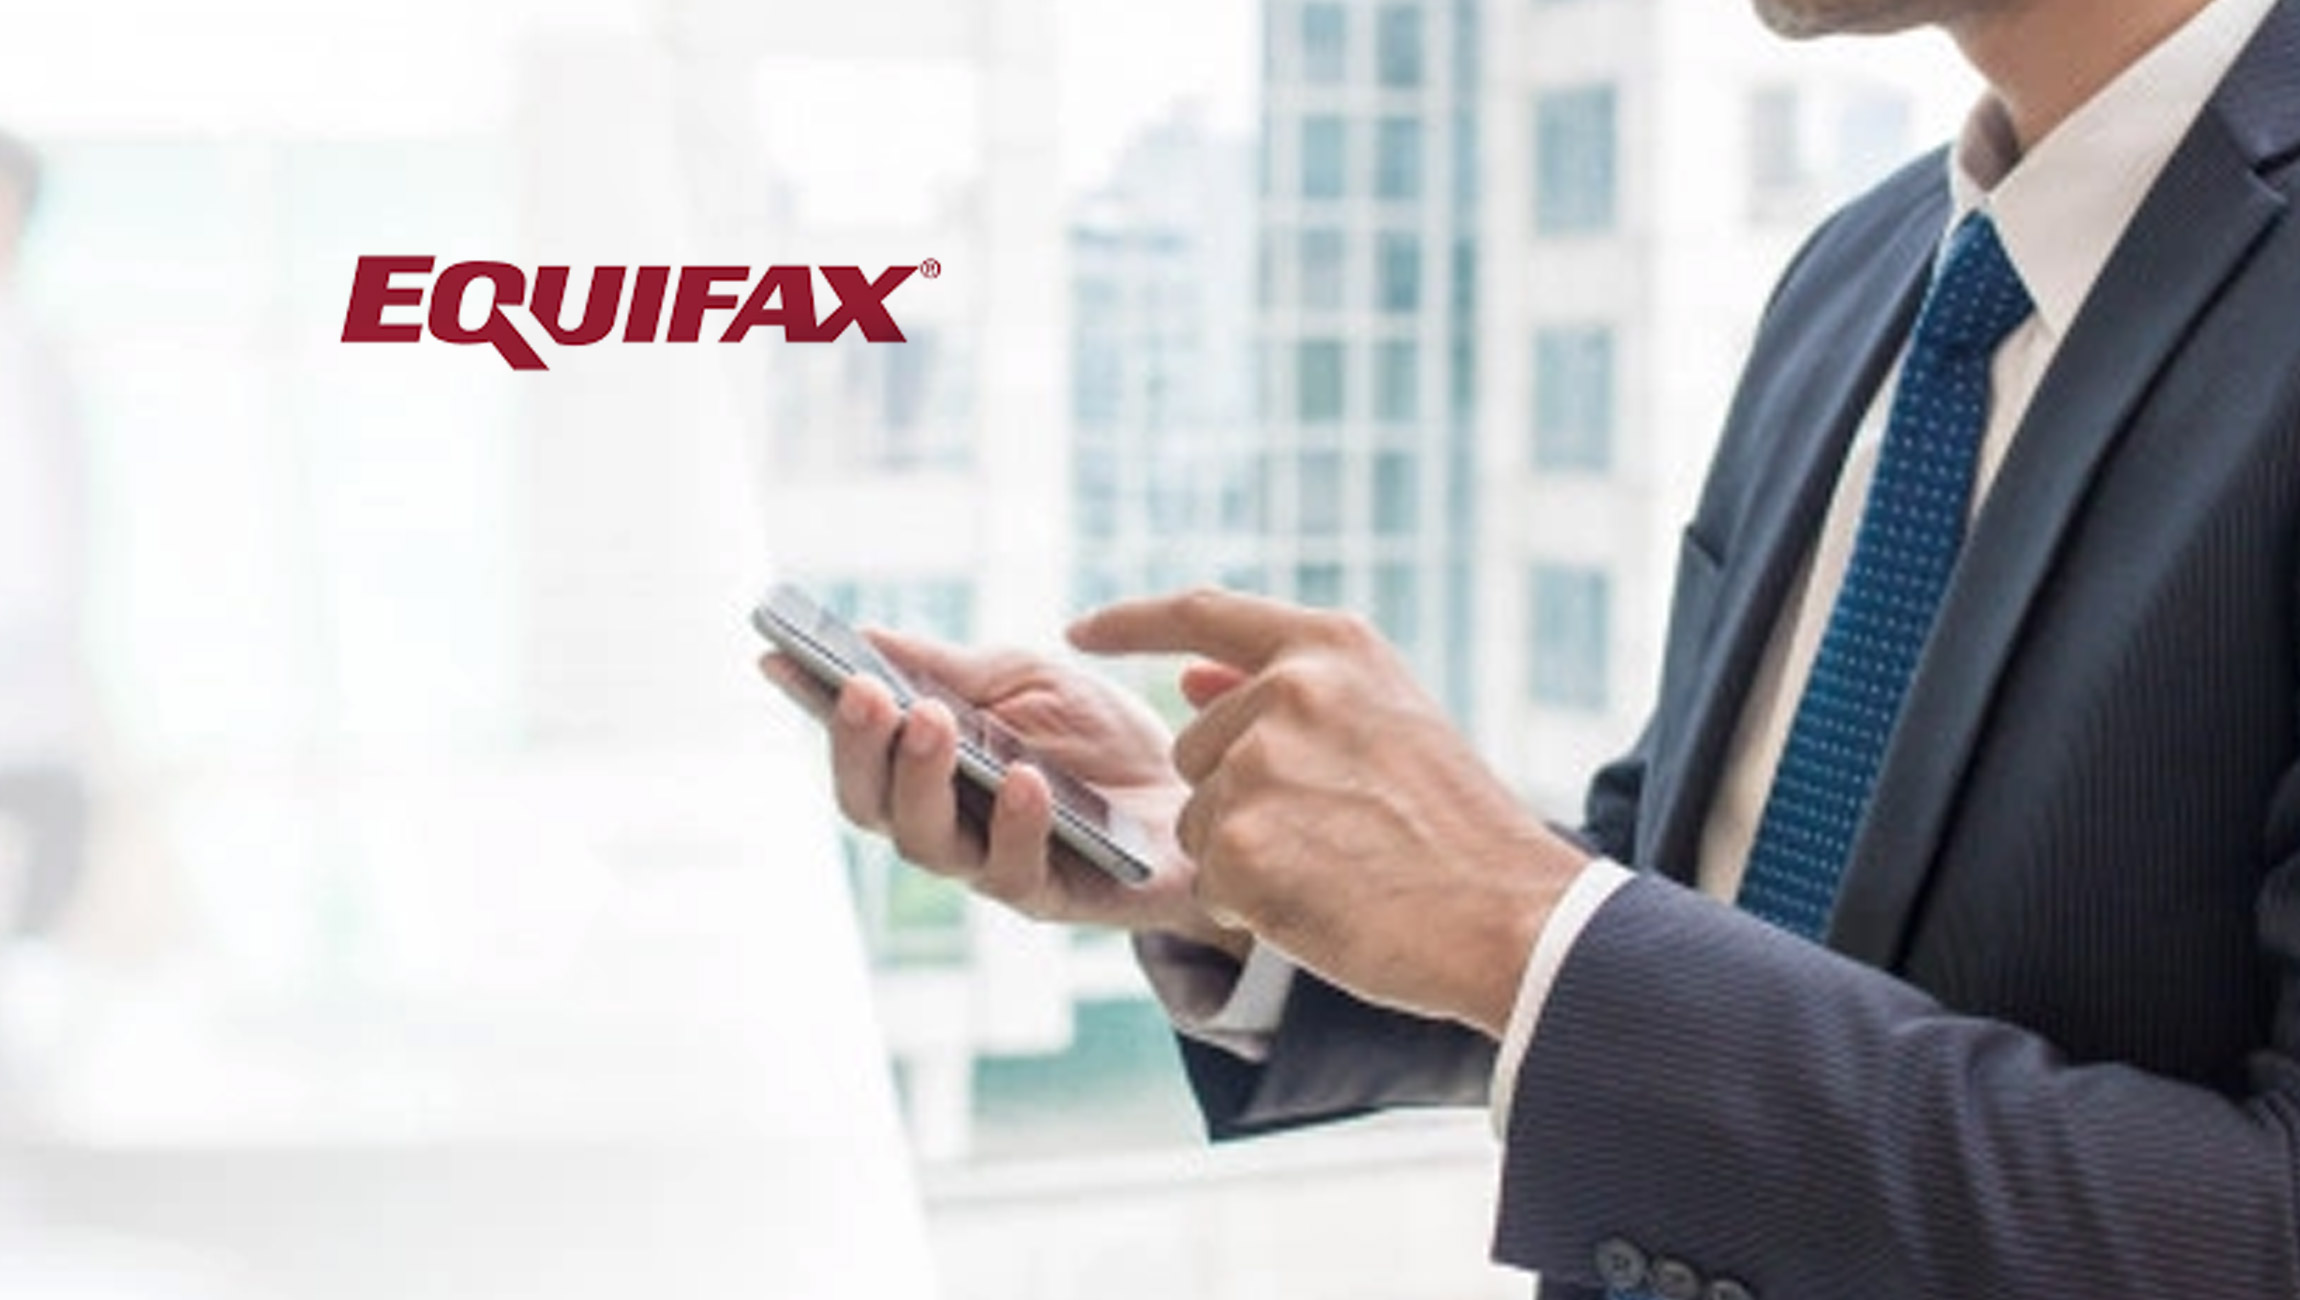 Kount, An Equifax Company, Announces New Dispute and Chargeback Management Solution, Integrating Major Card Brand Offerings in One Dashboard 1